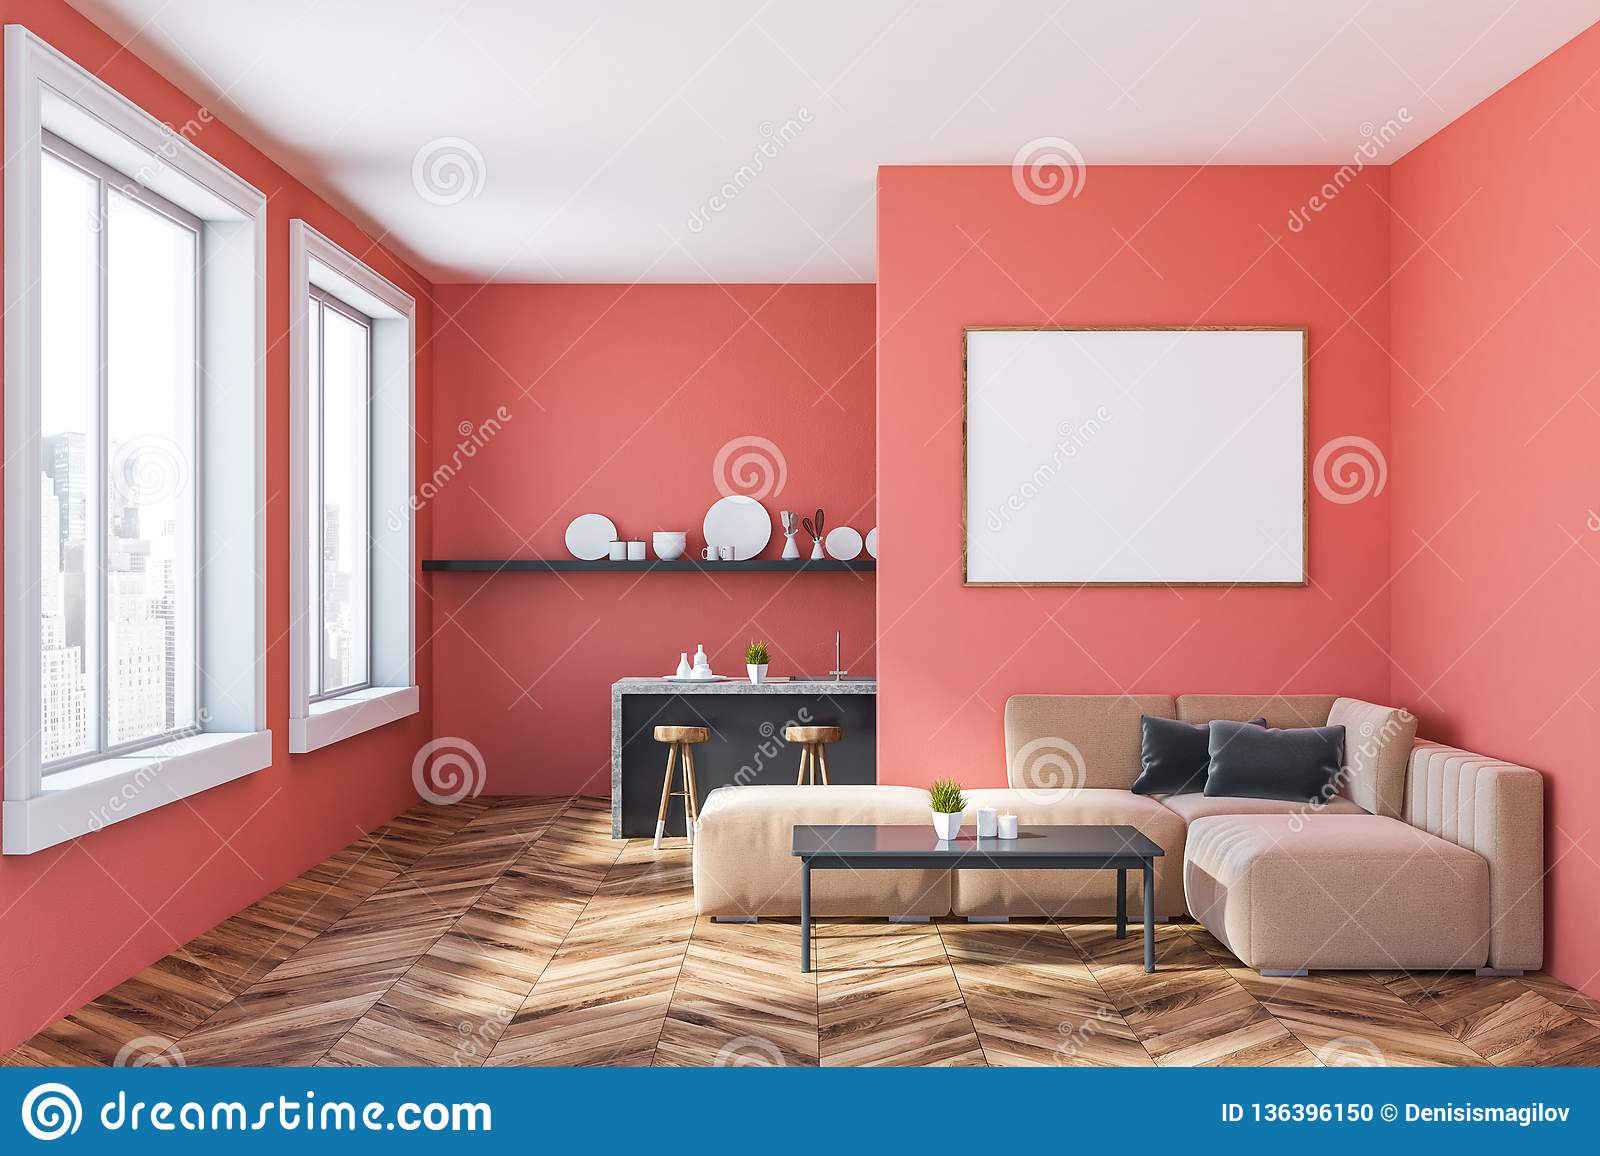 Pink Kitchen With Bar And Sofa, Poster Stock Illustration ...